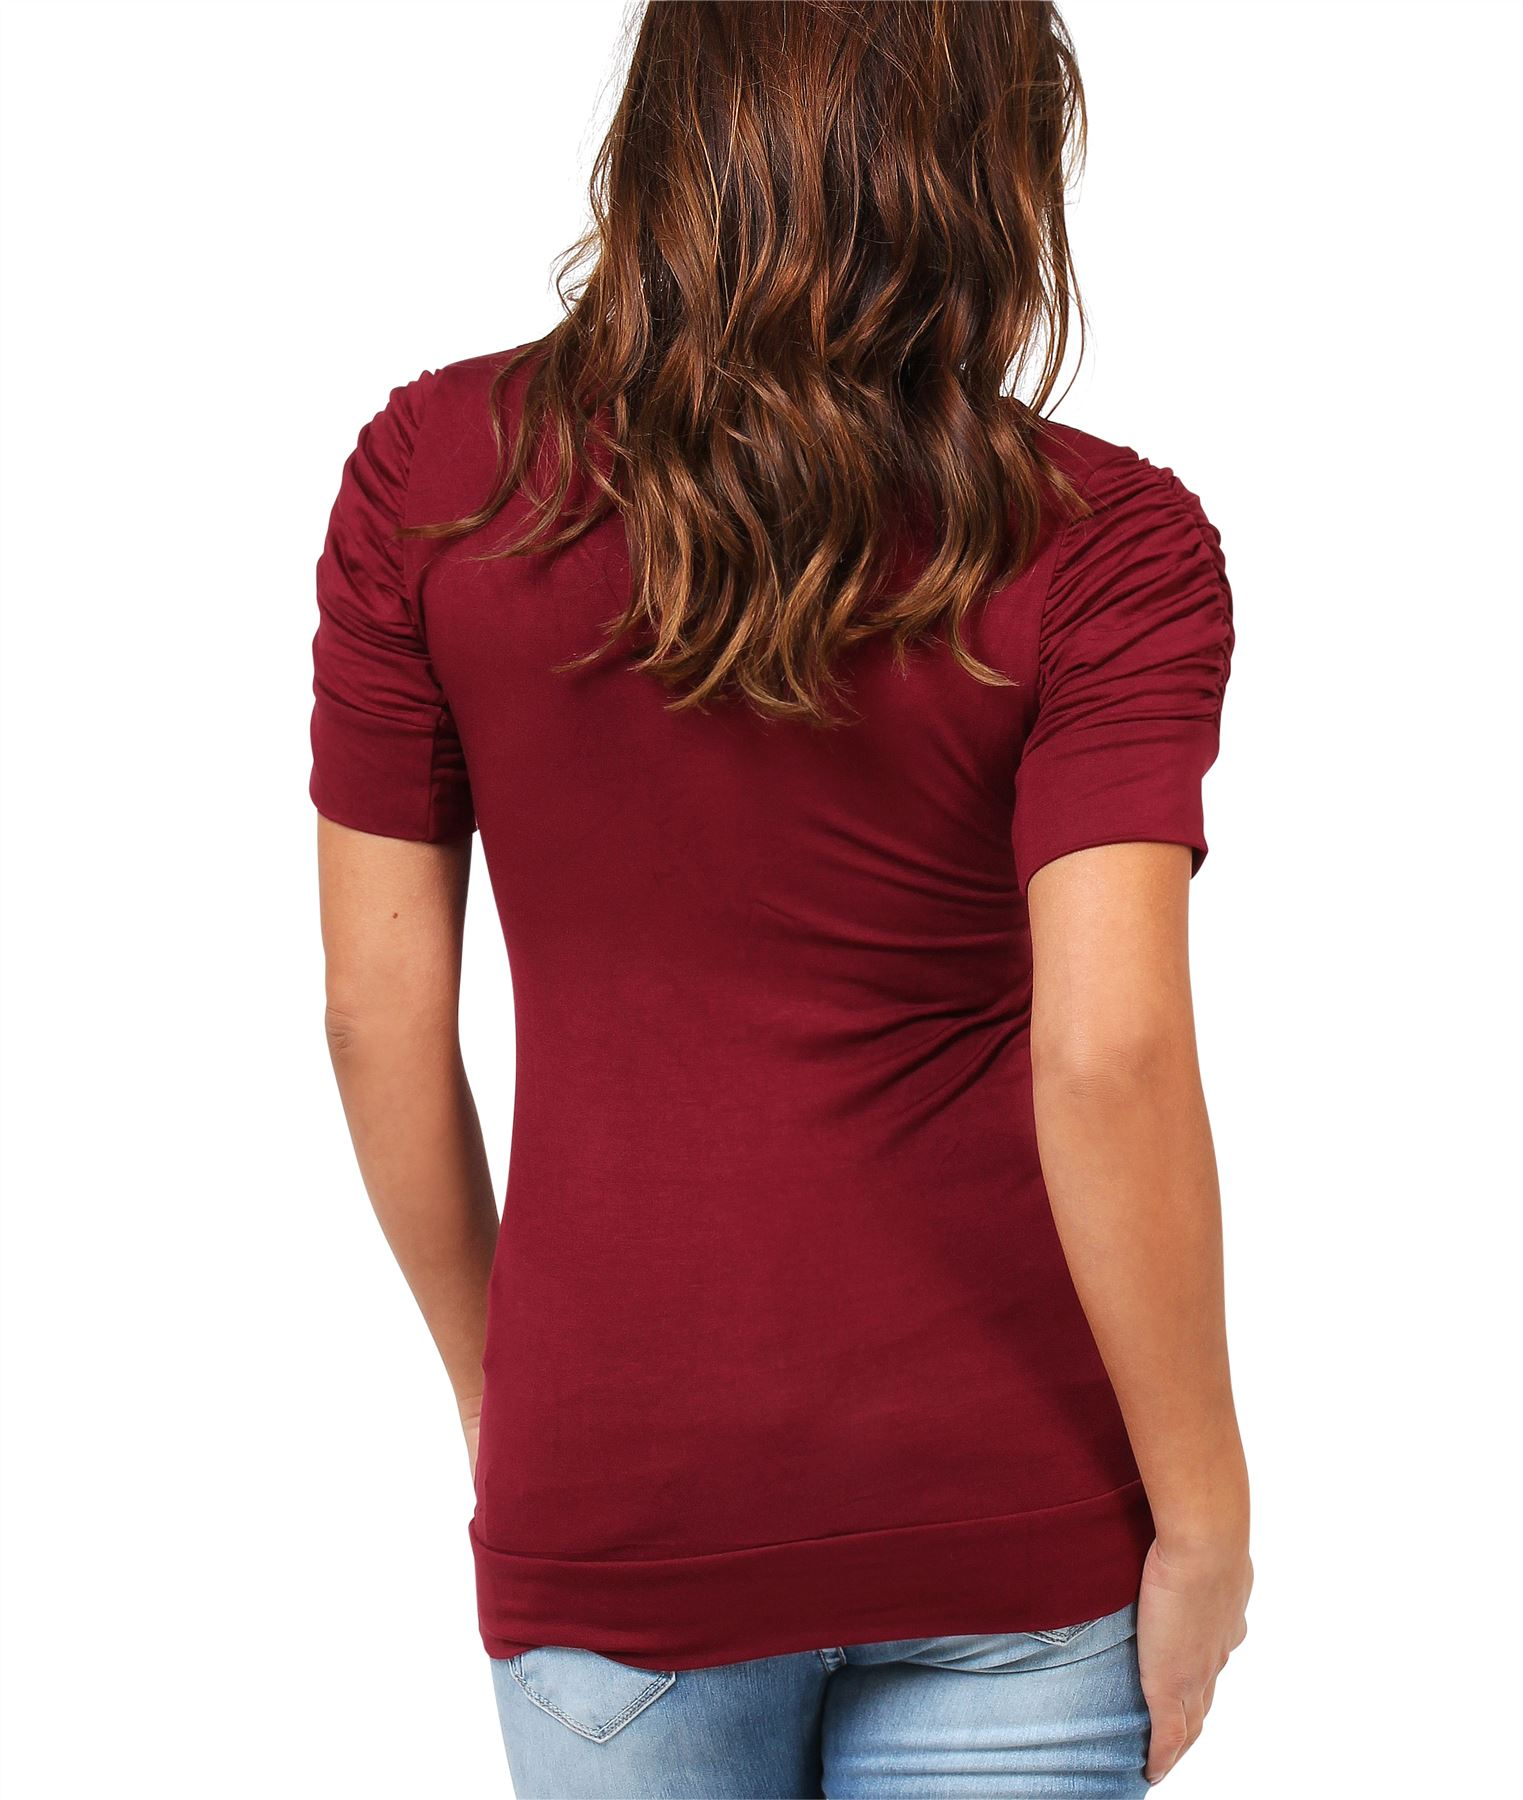 Womens-Ladies-Long-Blouse-Ruched-Pleated-Sleeve-Stretch-Jersey-Plunge-Top-Tshirt thumbnail 43